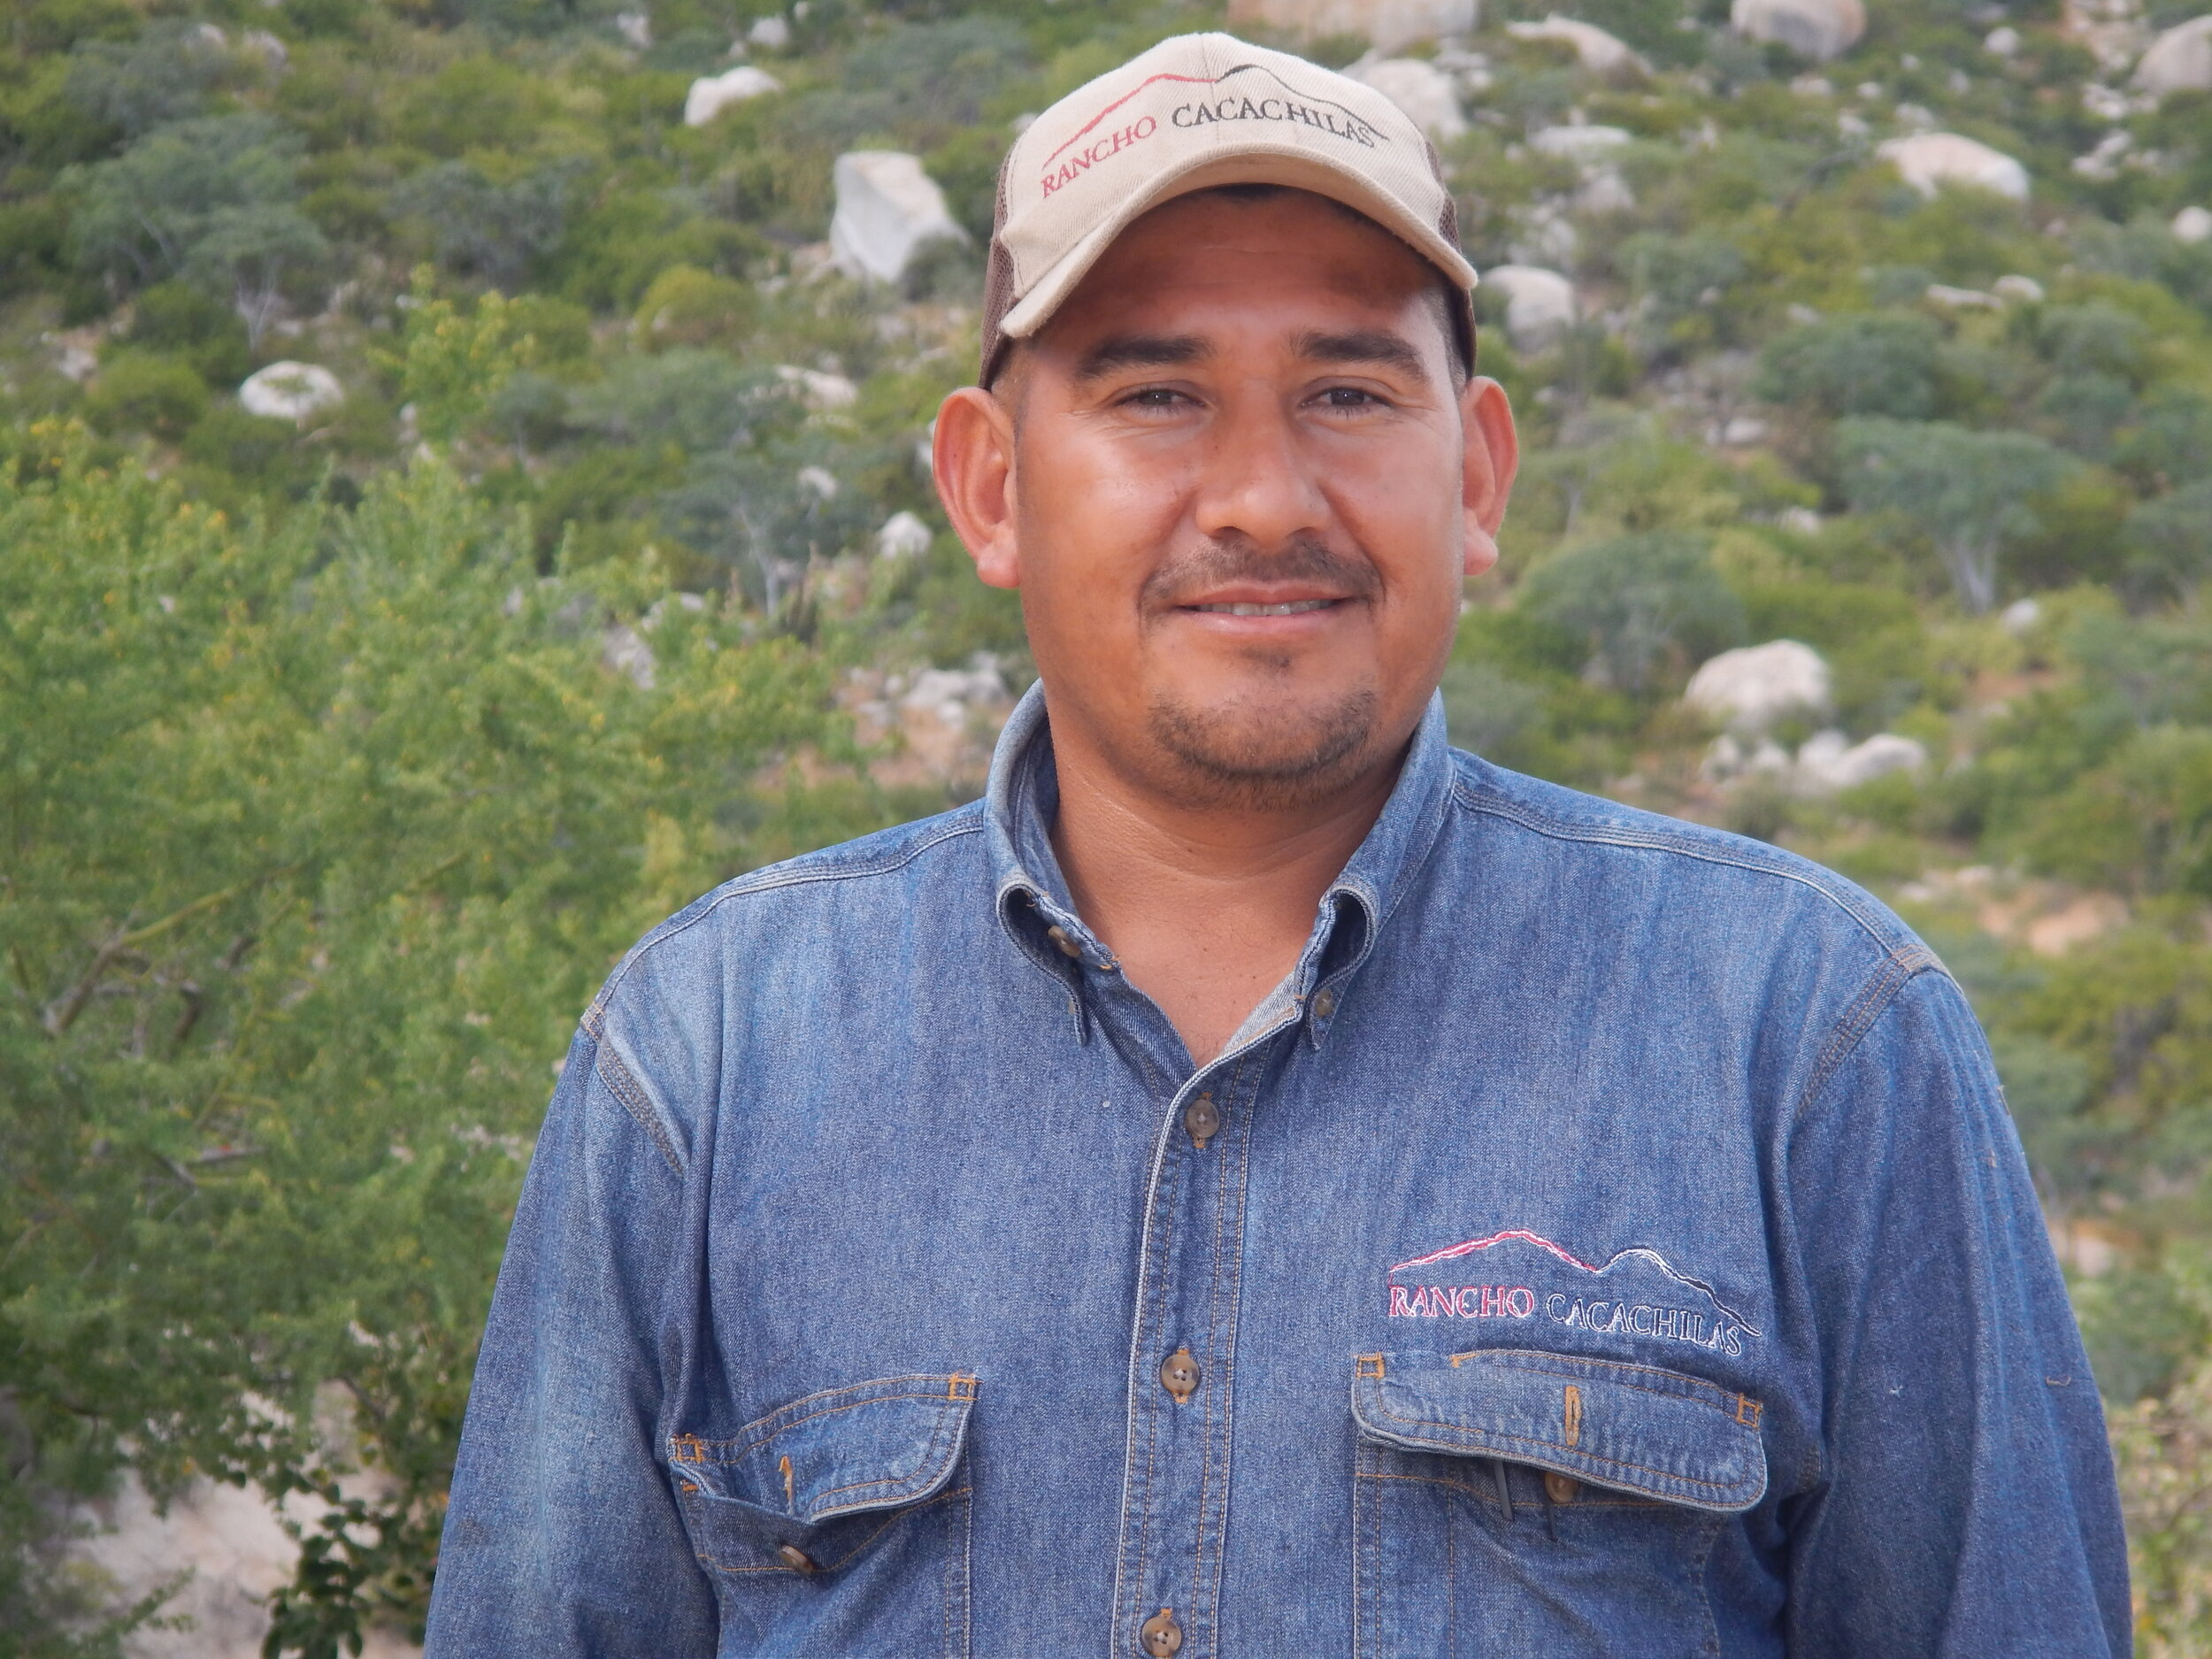 Ismael Aviles   Ismael is responsible for the machinery maintenance and operation workshop, his skills, experience and knowledge make him a key person of our staff, he is in charge of welding, mechanics and maintenance of vehicles and machinery. He is also very skilled at solving any maintenance problem or any problem on the ranch, always available for any task, even participating in livestock grazing.